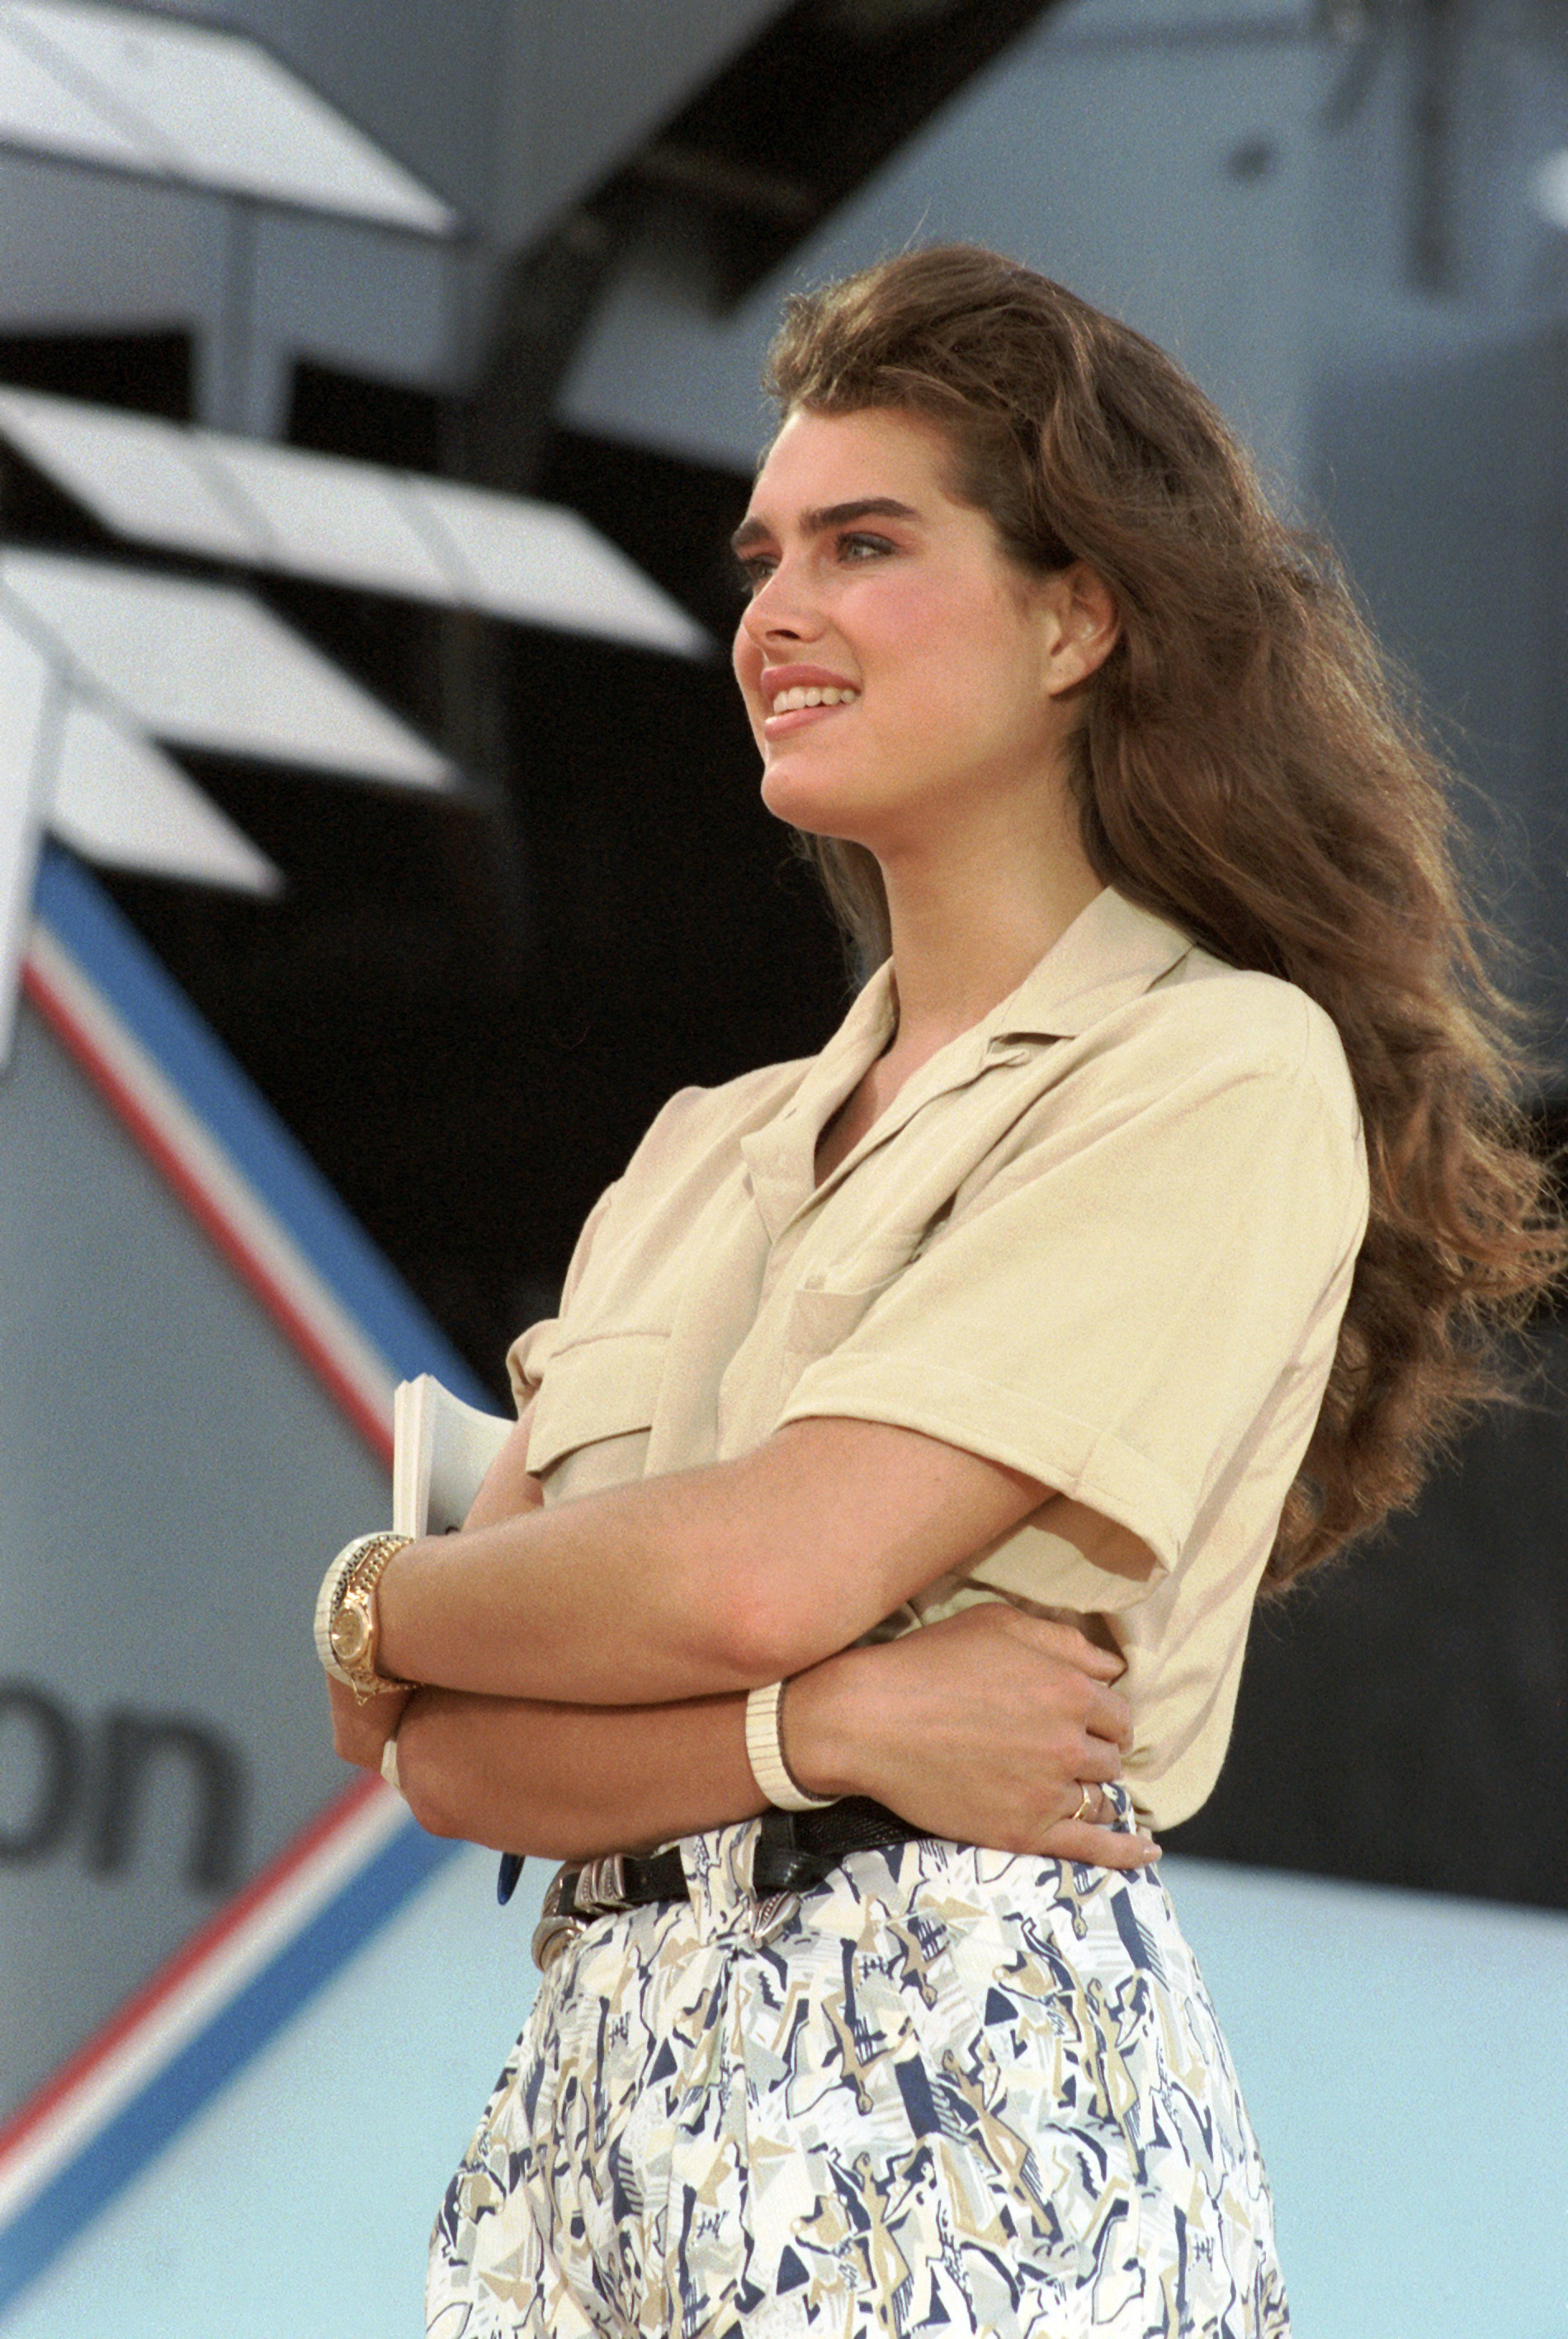 Description Brooke Shields in 1986.JPEG